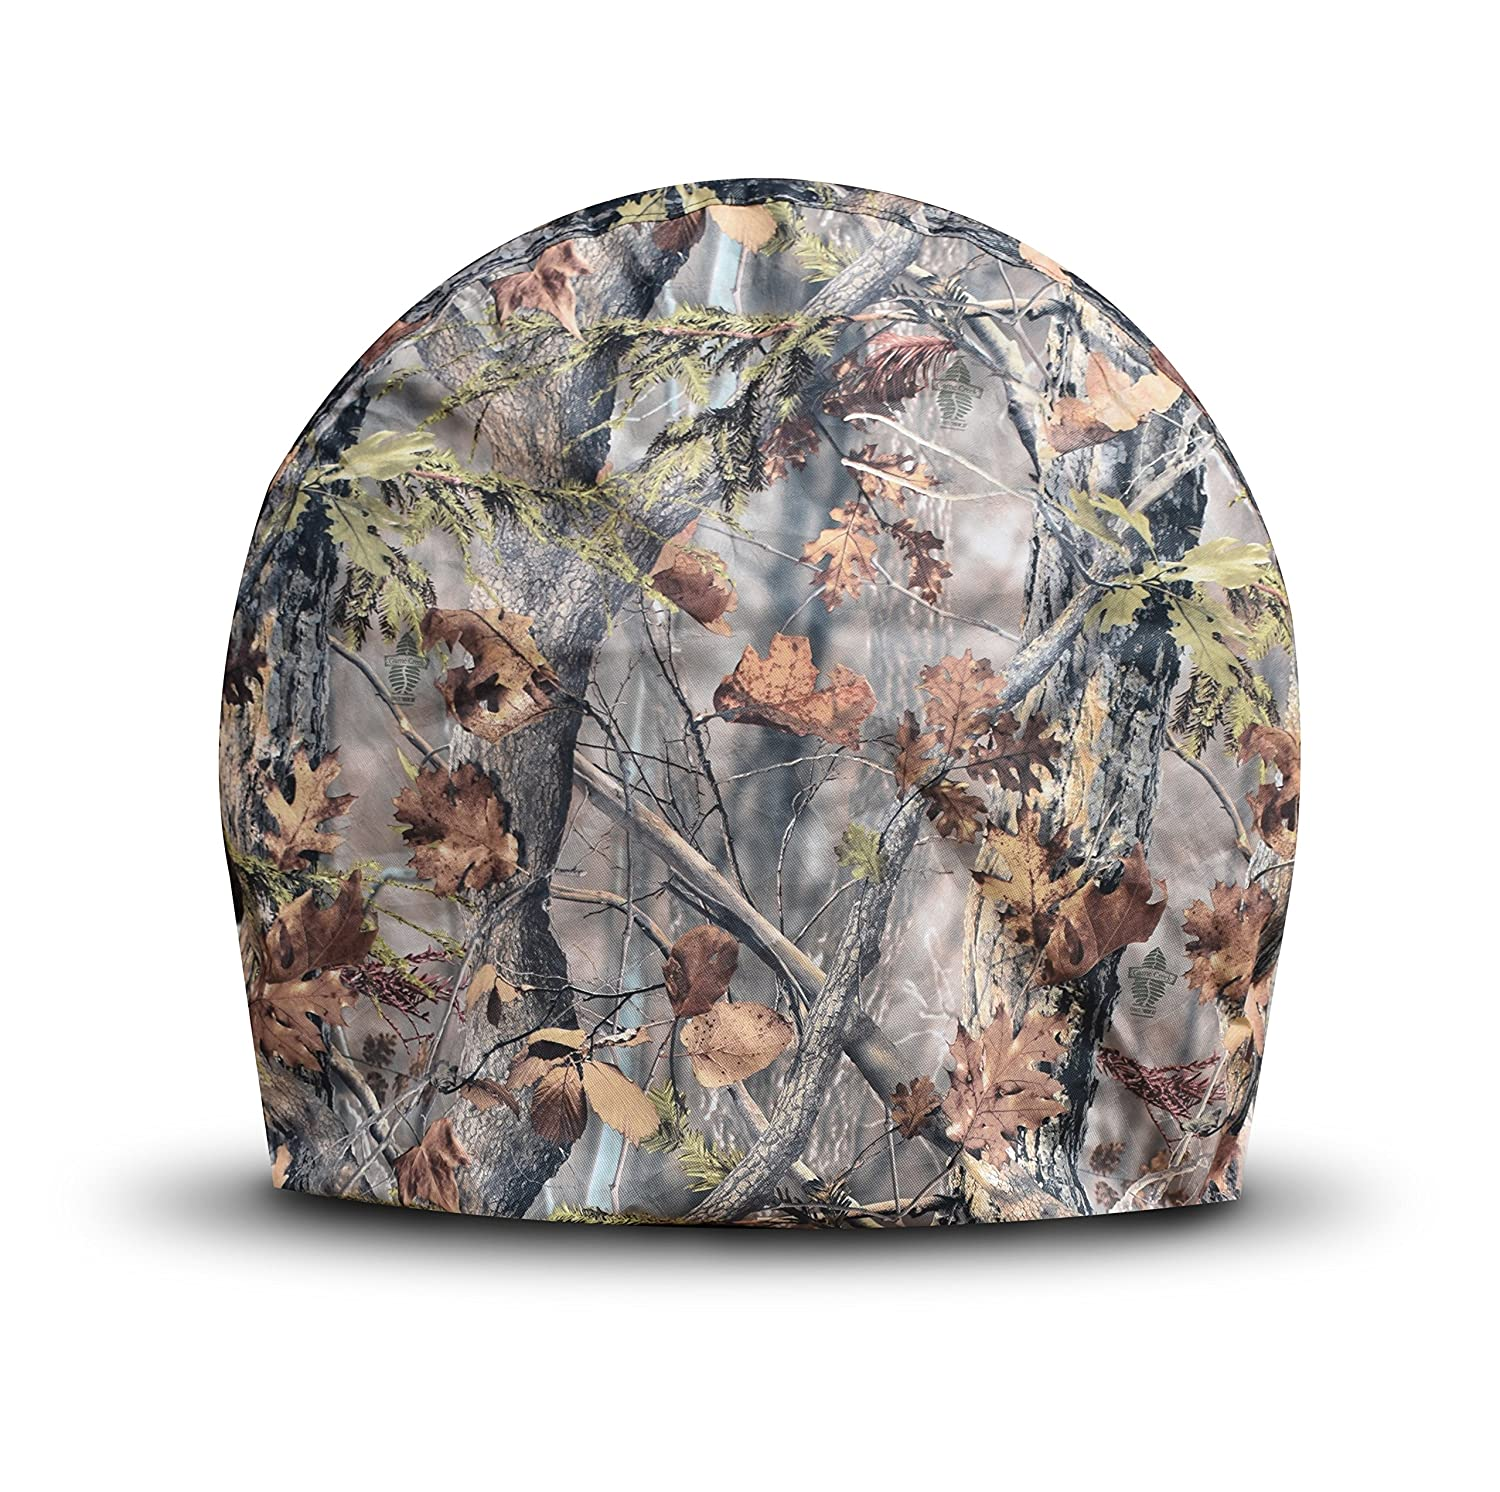 ADCO 3649 Camouflage Bus Game Creek Oaks Tyre Gard Wheel Cover, (Set of 2) (Fits 40'-42') (Set of 2) (Fits 40-42)